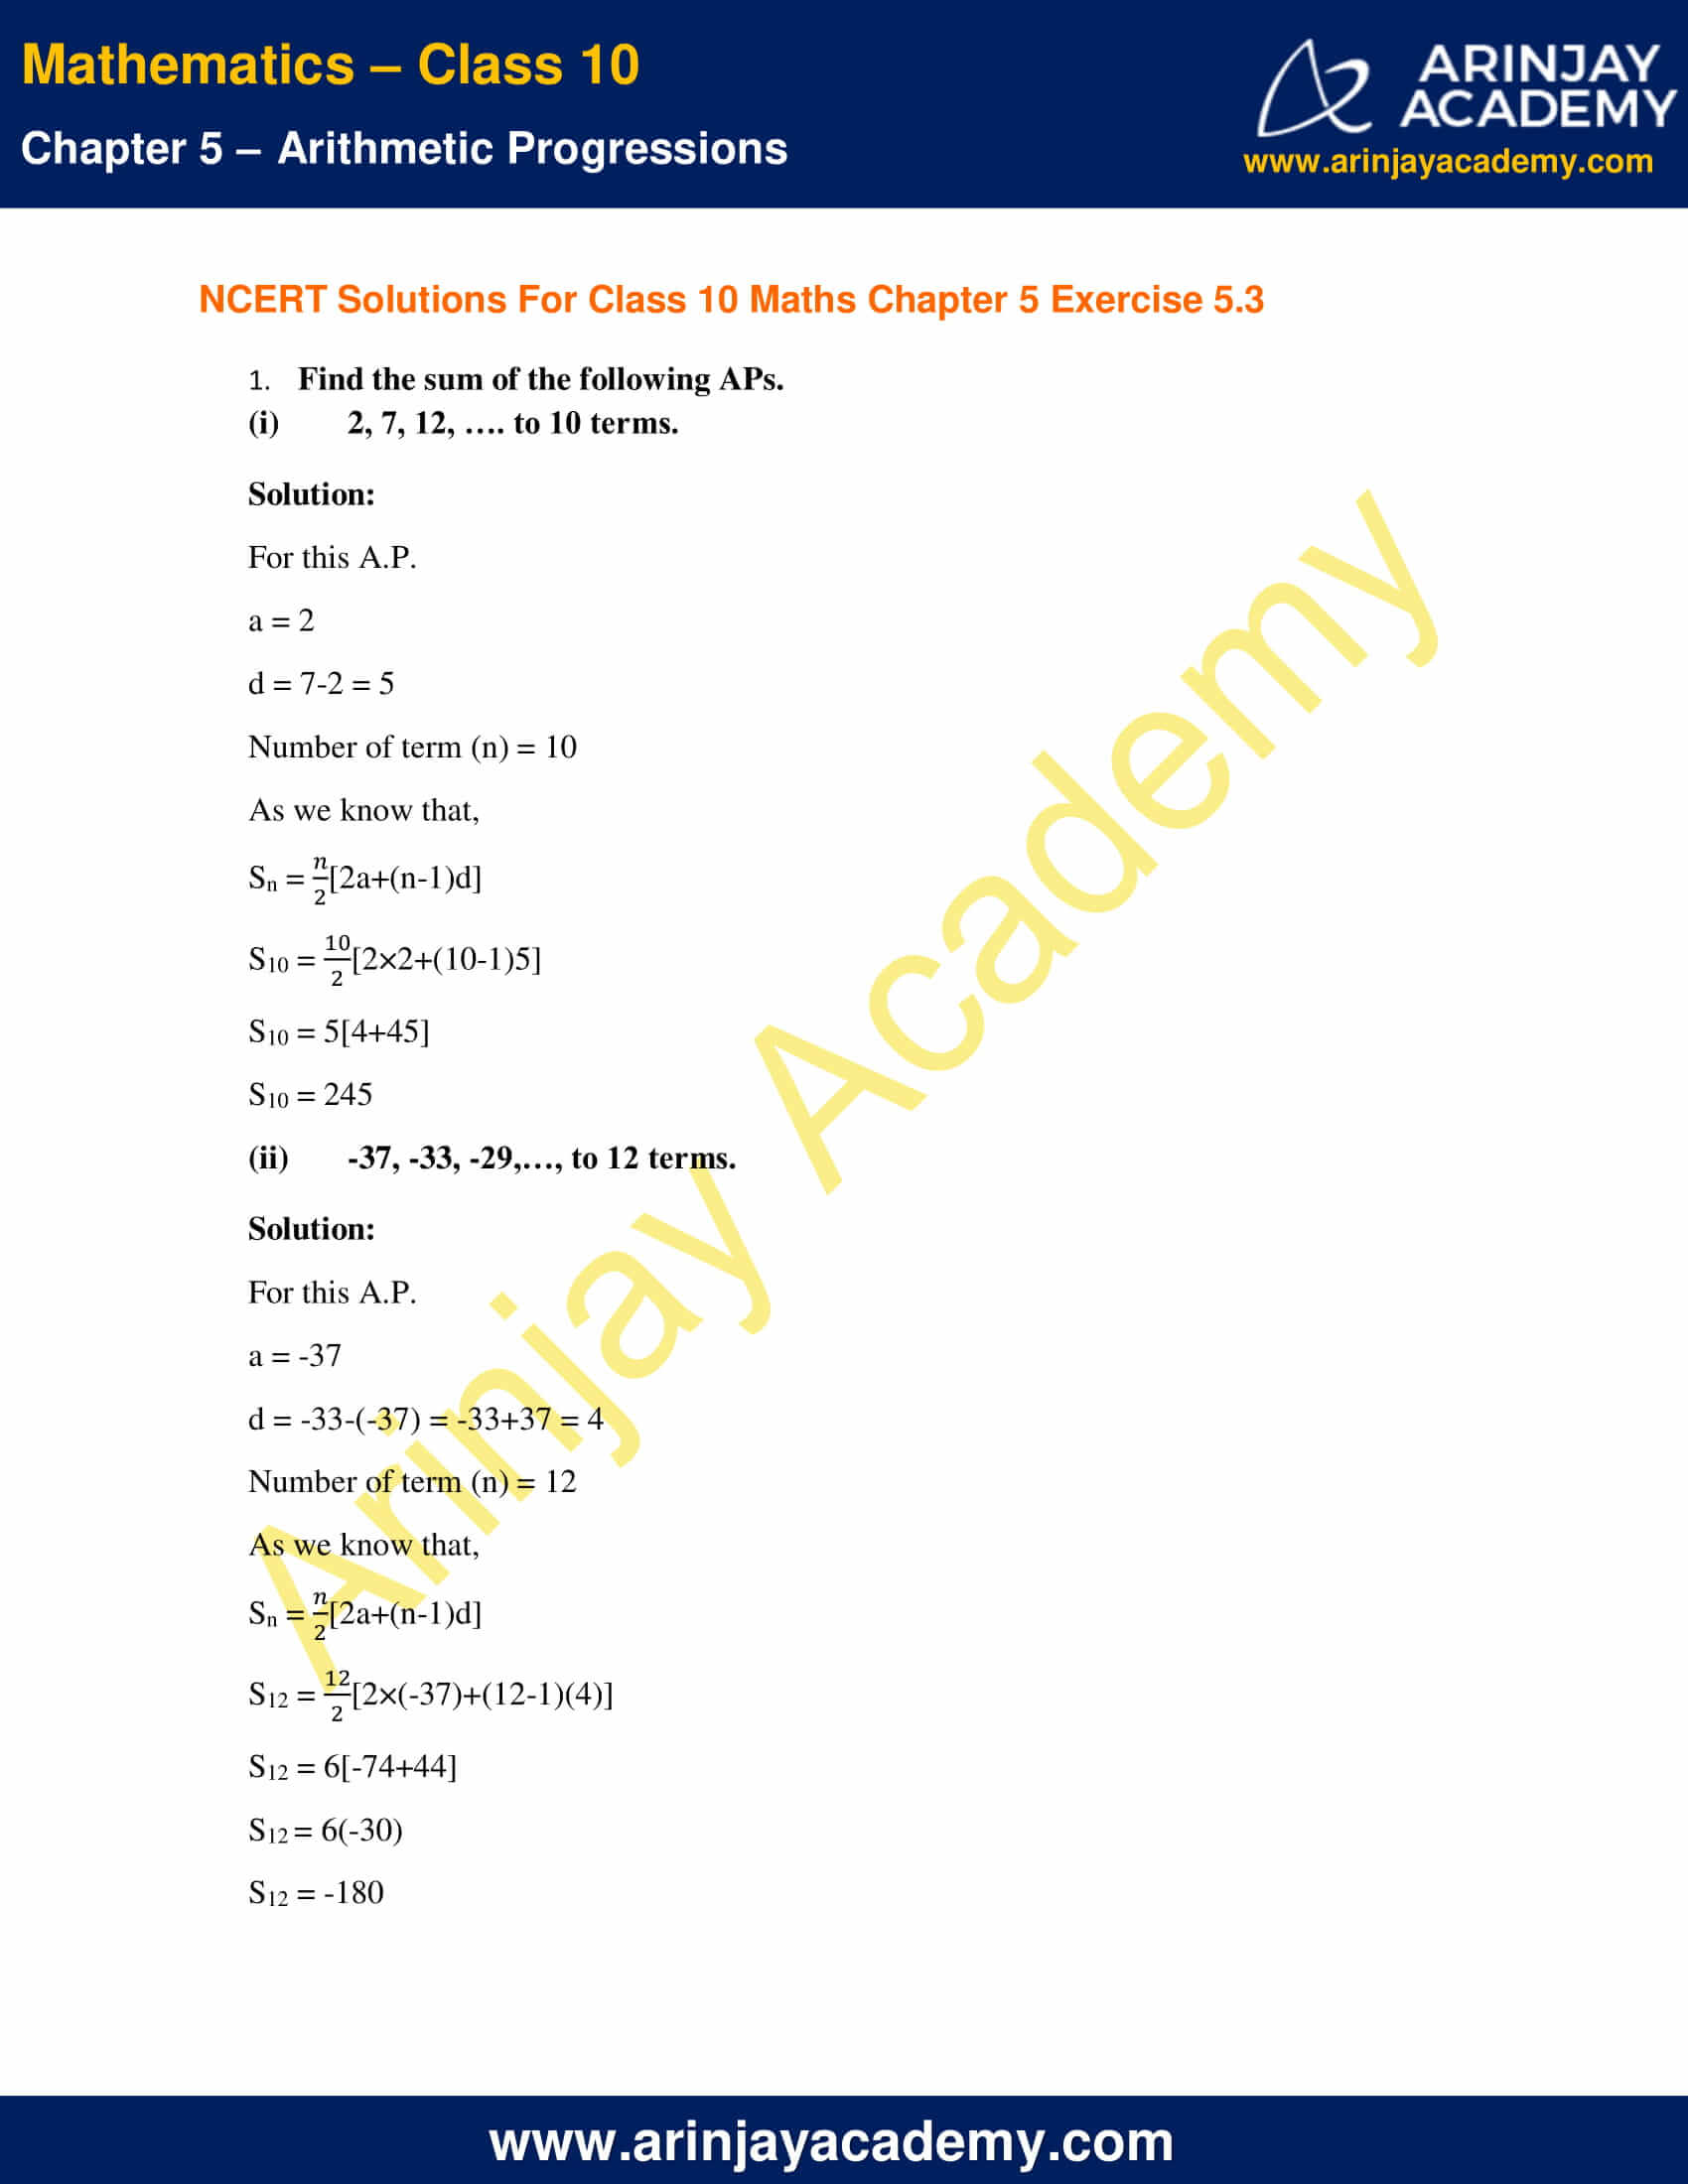 NCERT Solutions For Class 10 Maths Chapter 5 Exercise 5.3 image 1